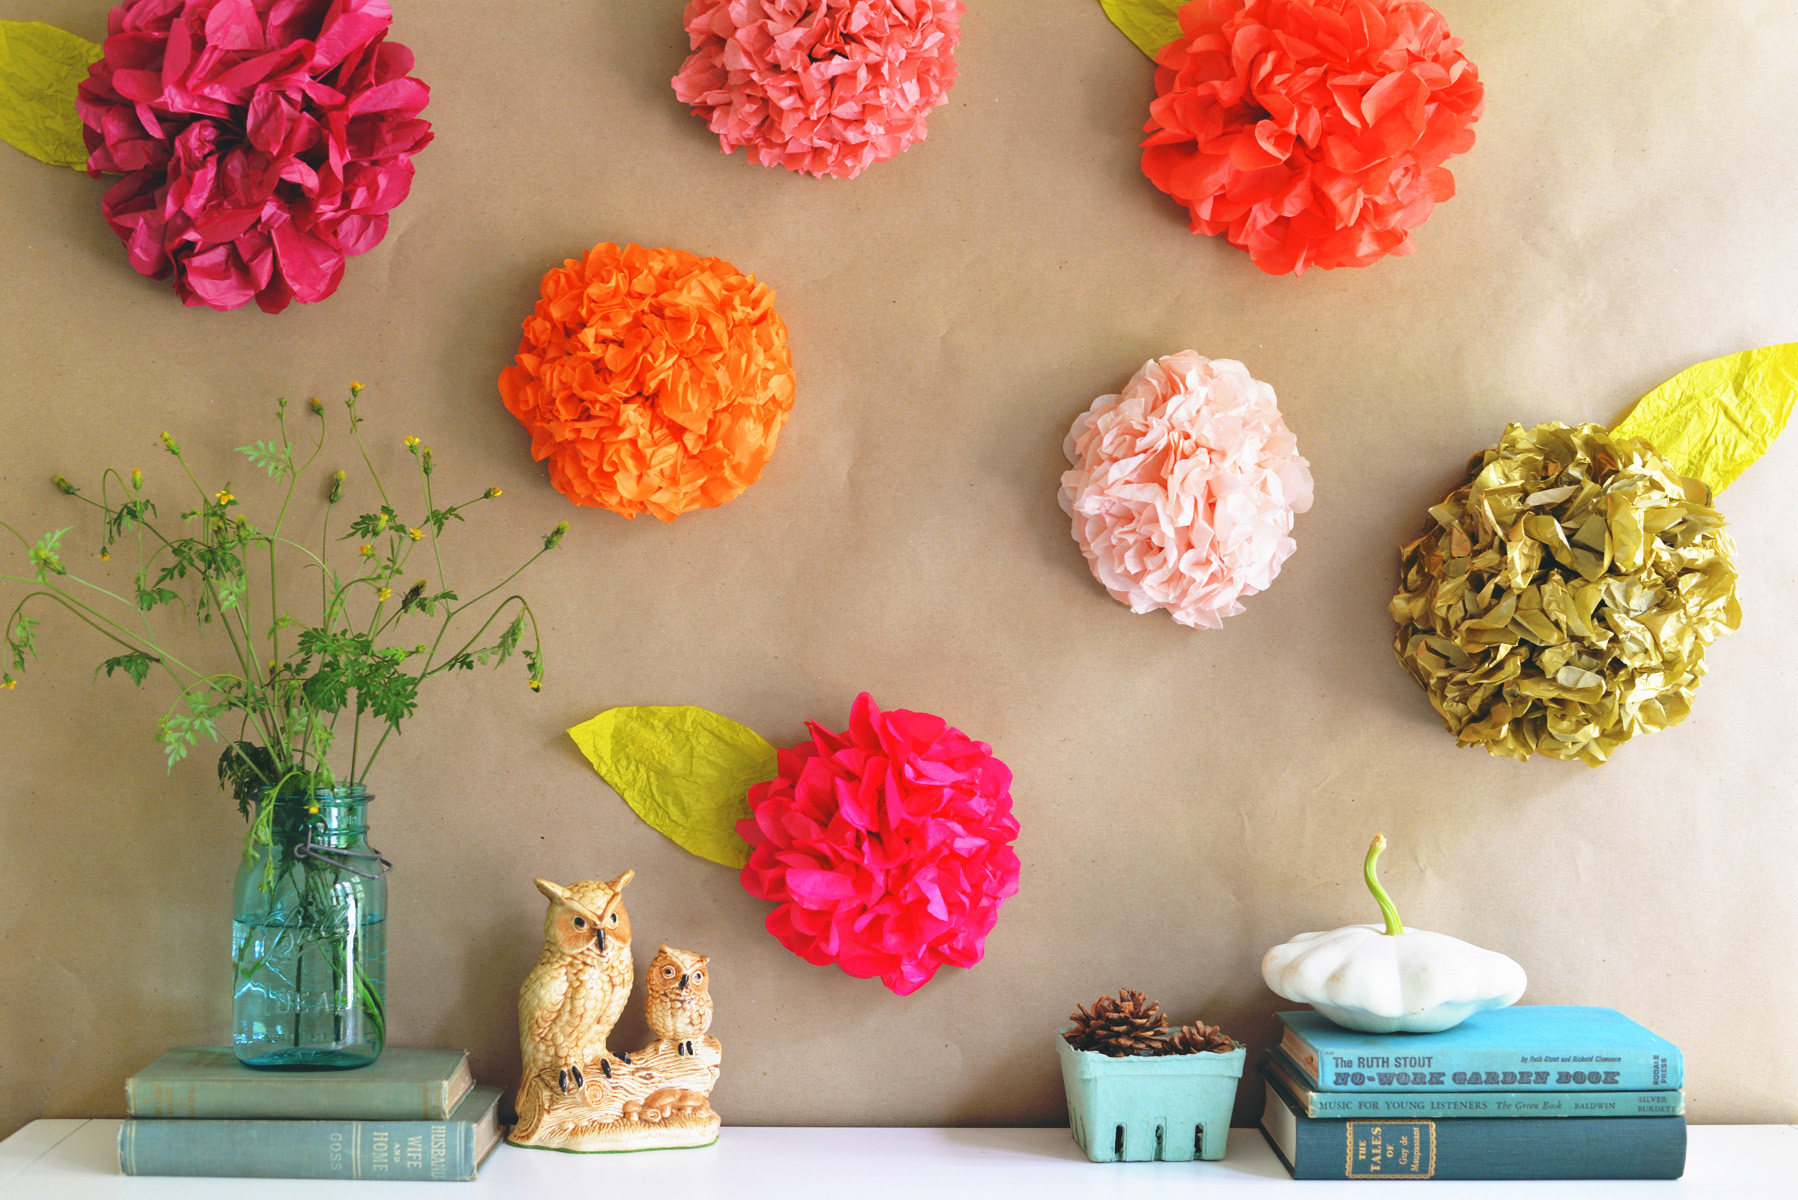 Diy Spring Home Decor 13 Easy Floral Projects Style Motivation